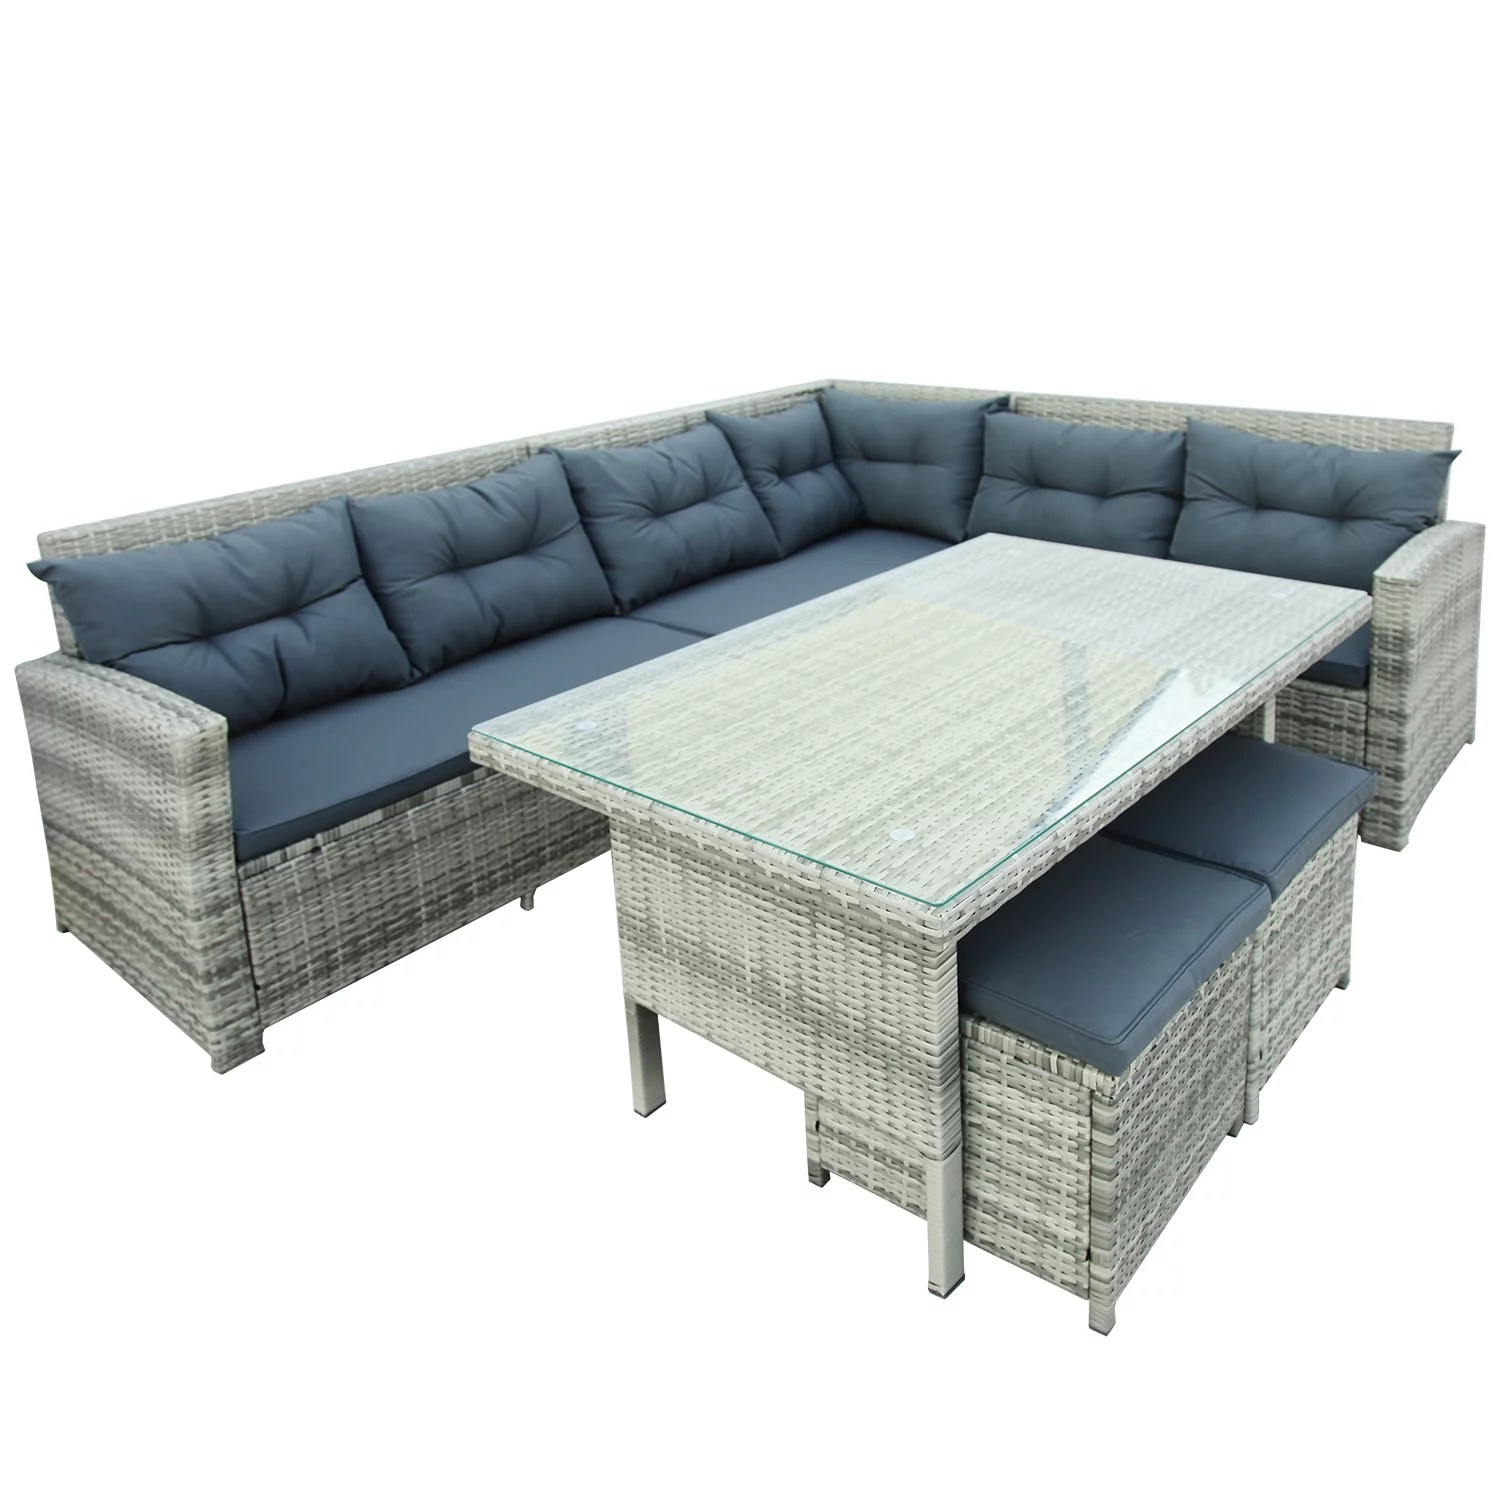 6 piece outdoor sectional patio conversation set modular wicker sofa set with removable seat cushions 2 ottoman tempered glass table bistro dining